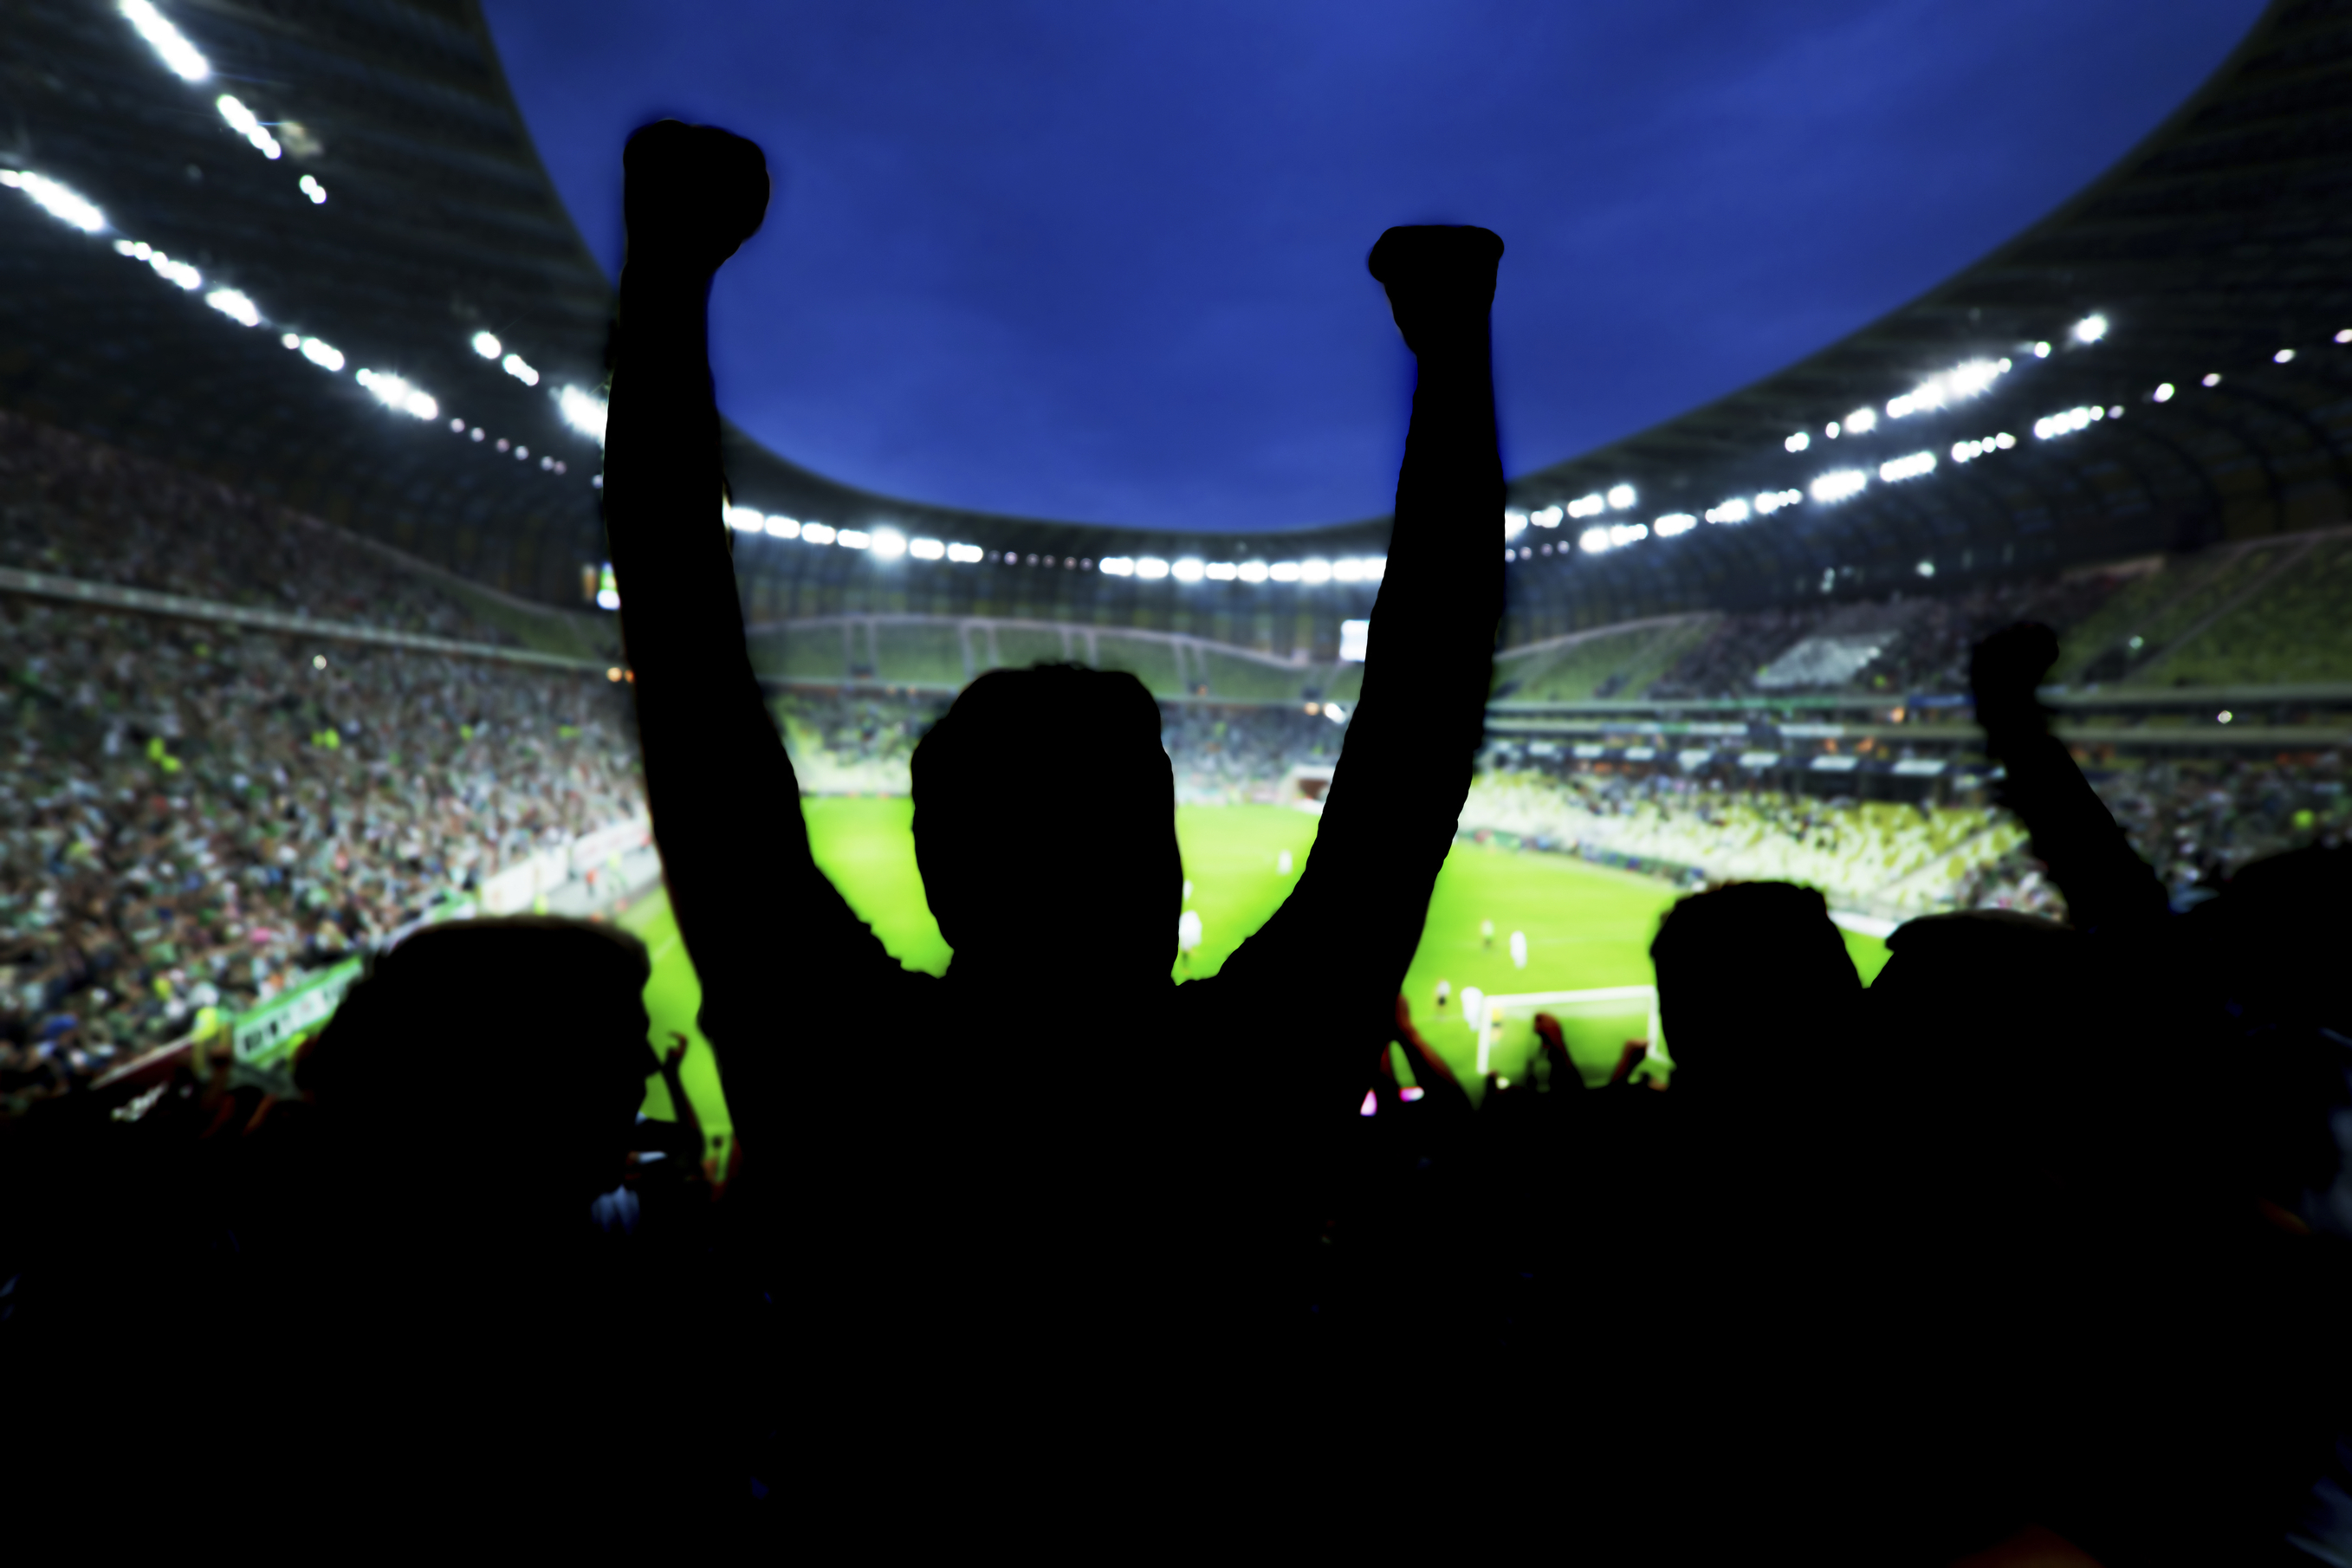 Using Data to Increase Fan Engagement